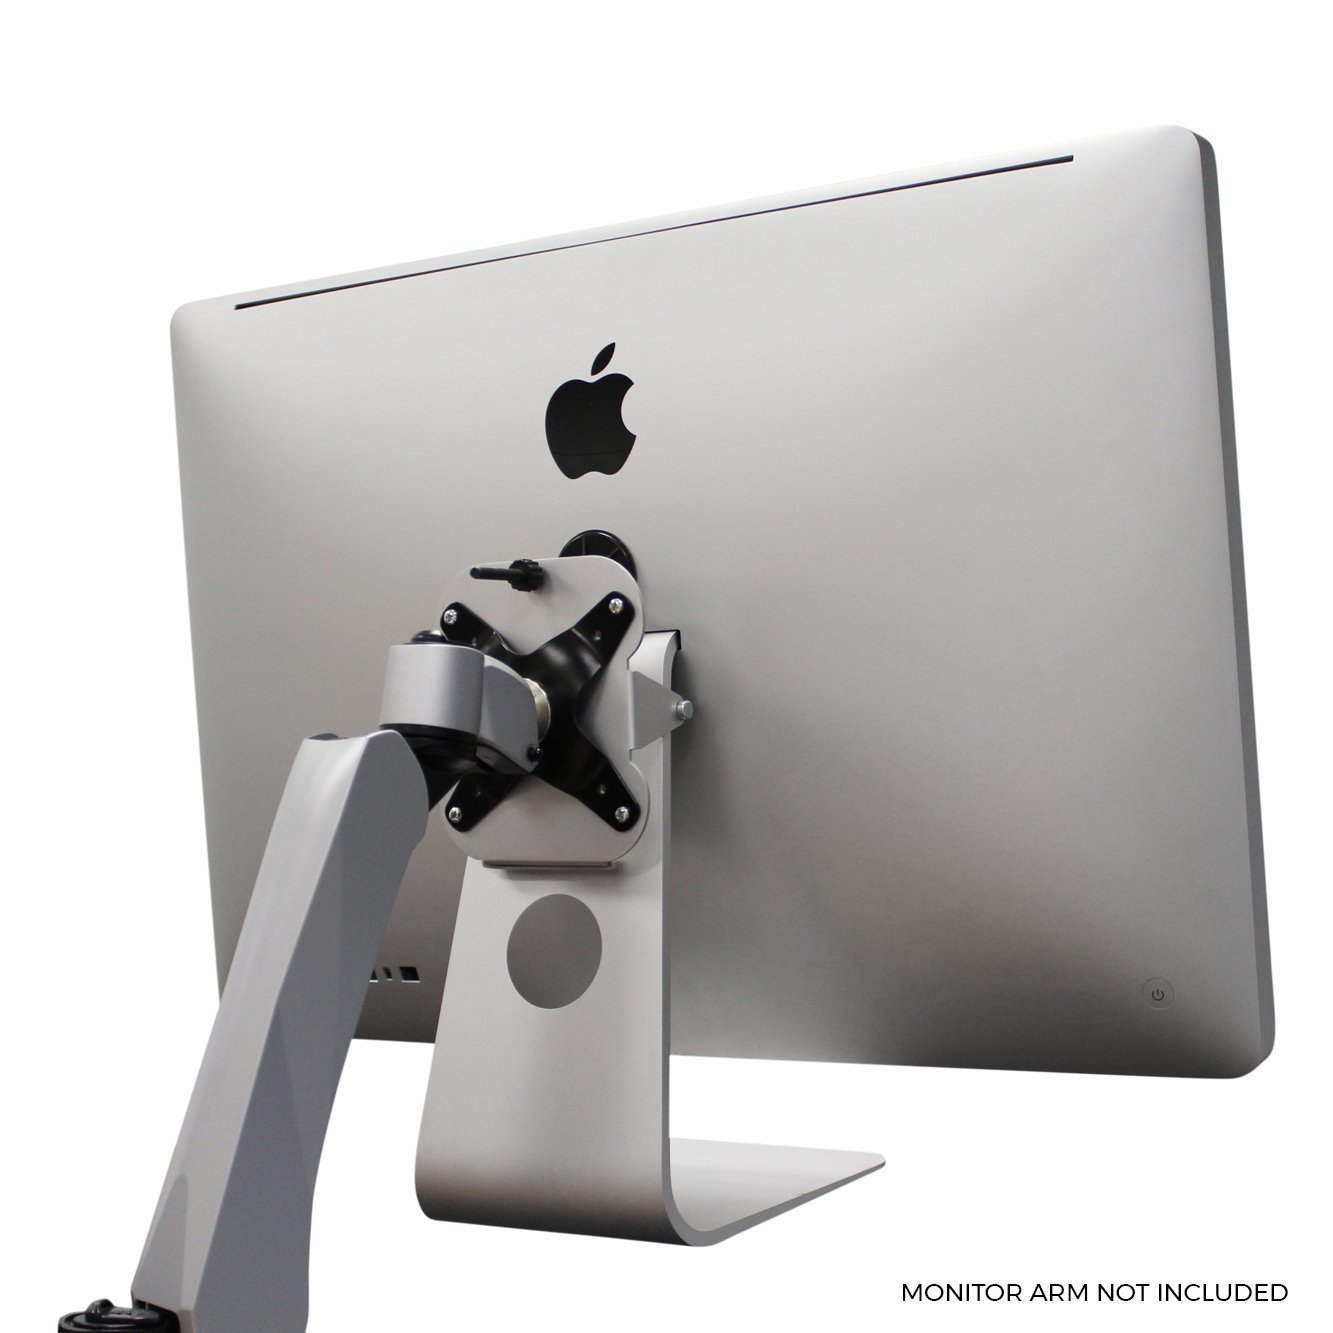 VESA Mounting Adapter Kit for All Apple iMacs with Non-Removable Stands | Late-2011 to Current Models | Patented - by HumanCentric by HumanCentric (Image #3)